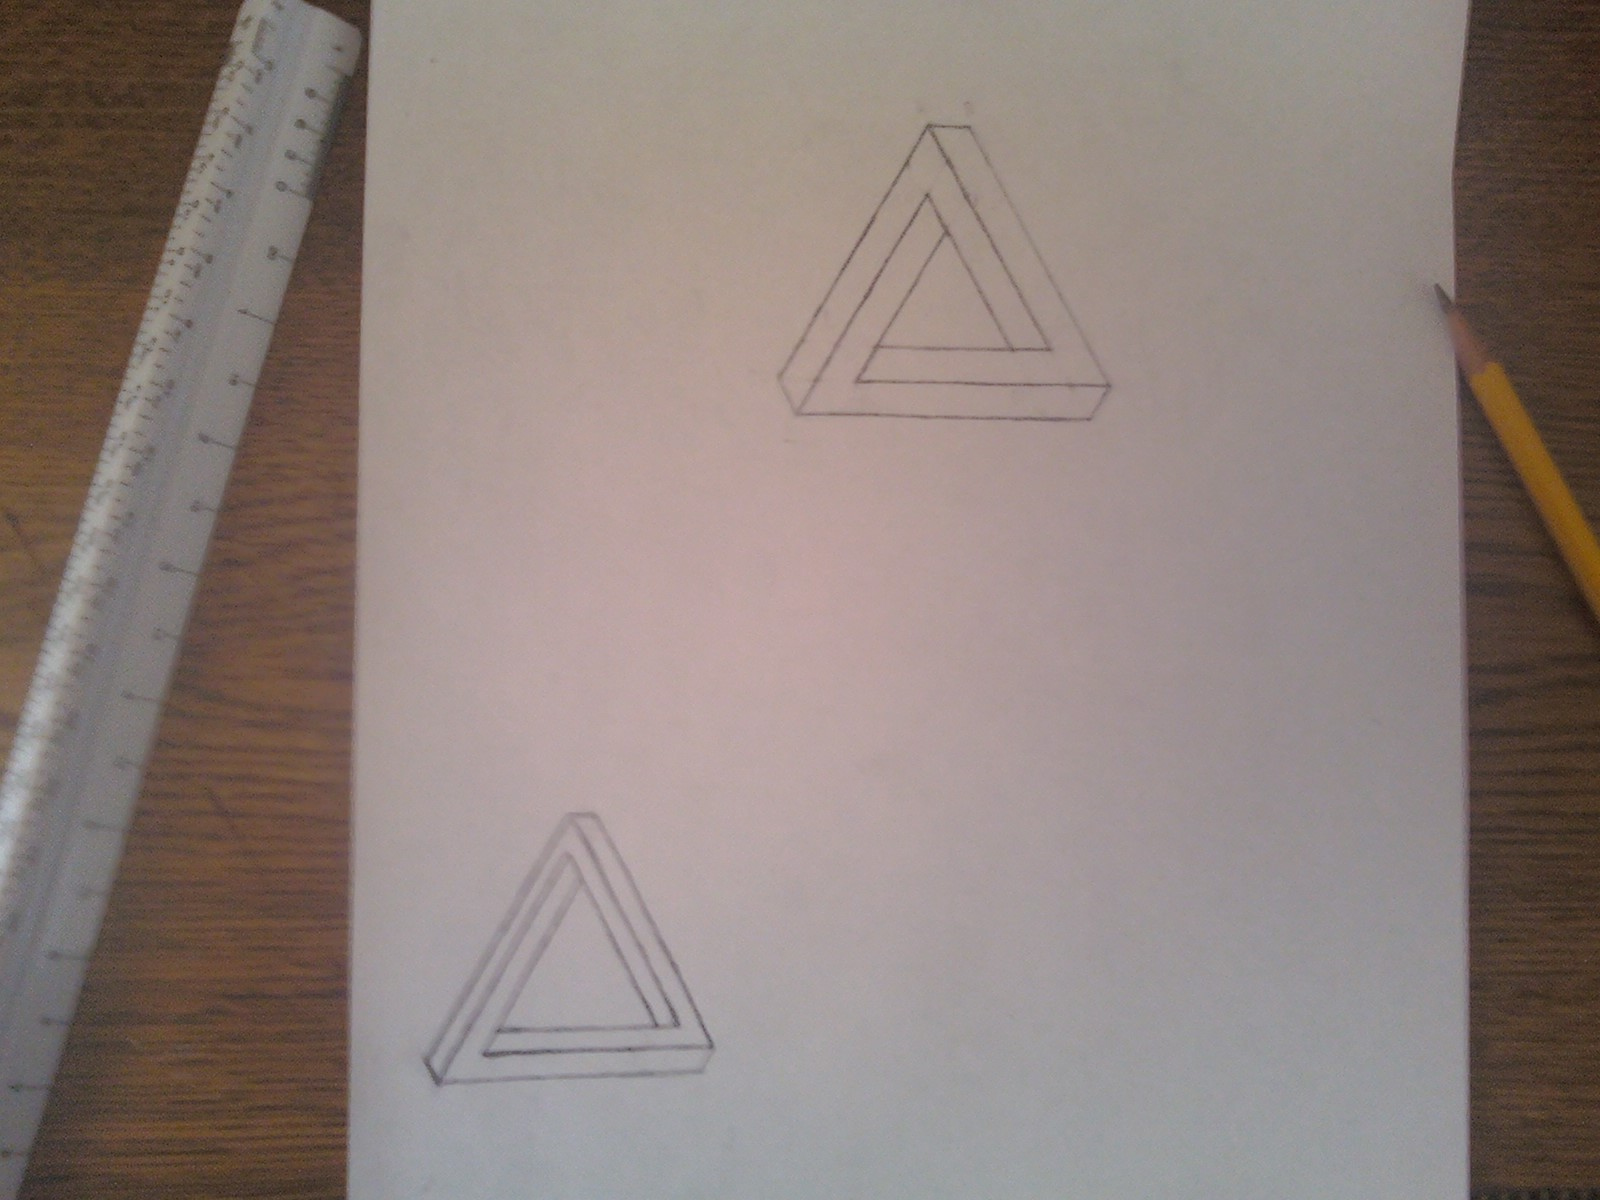 Draw a Penrose Triangle